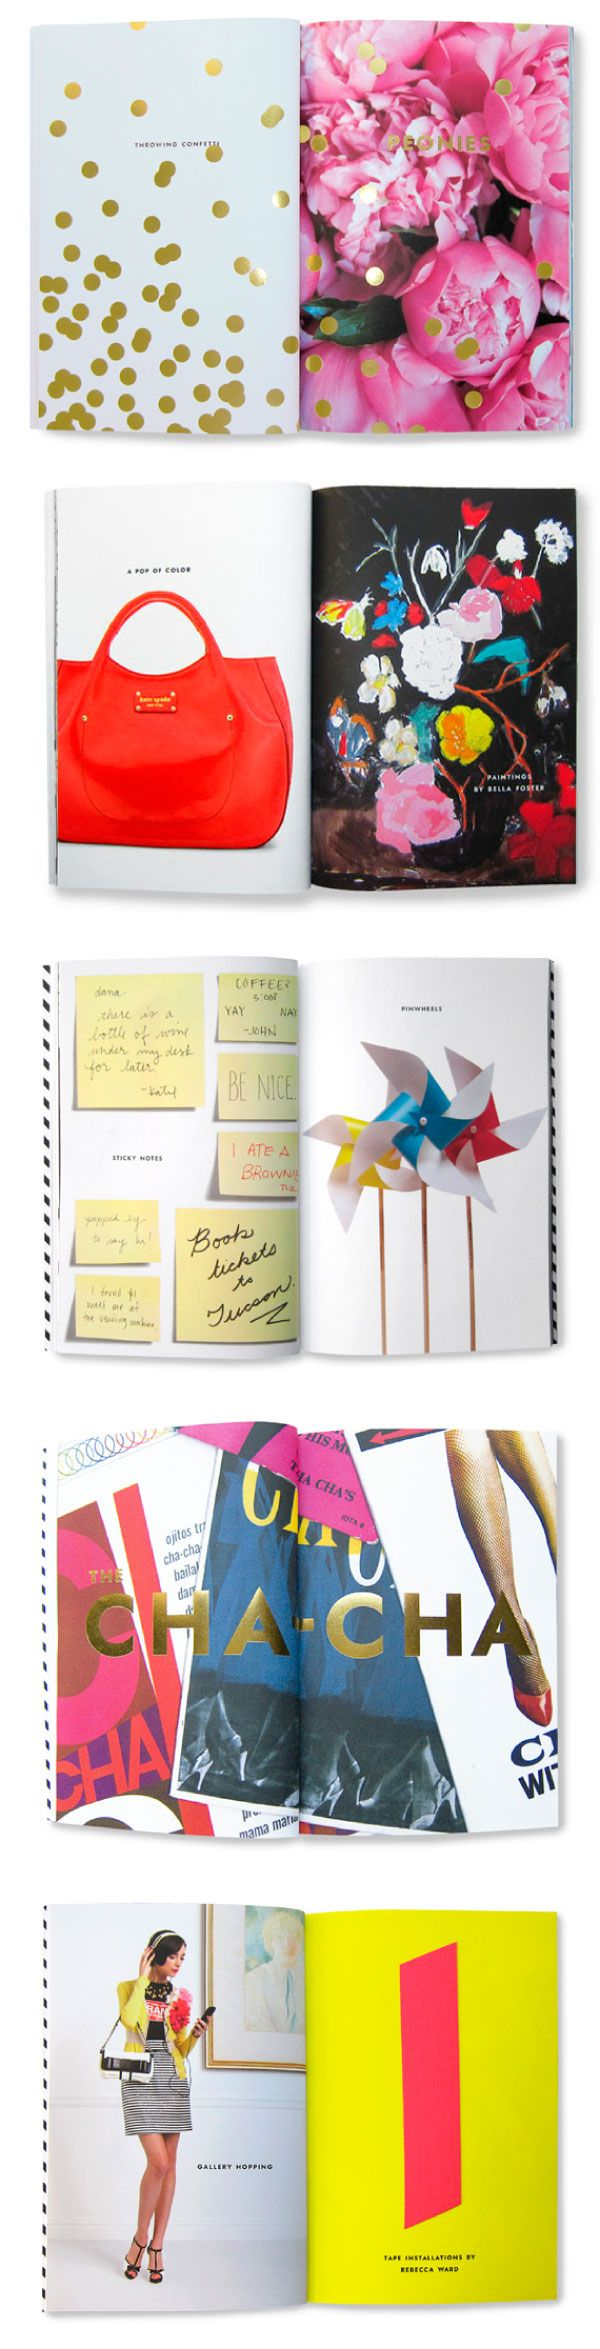 The Things We Love, the new Kate Spade book